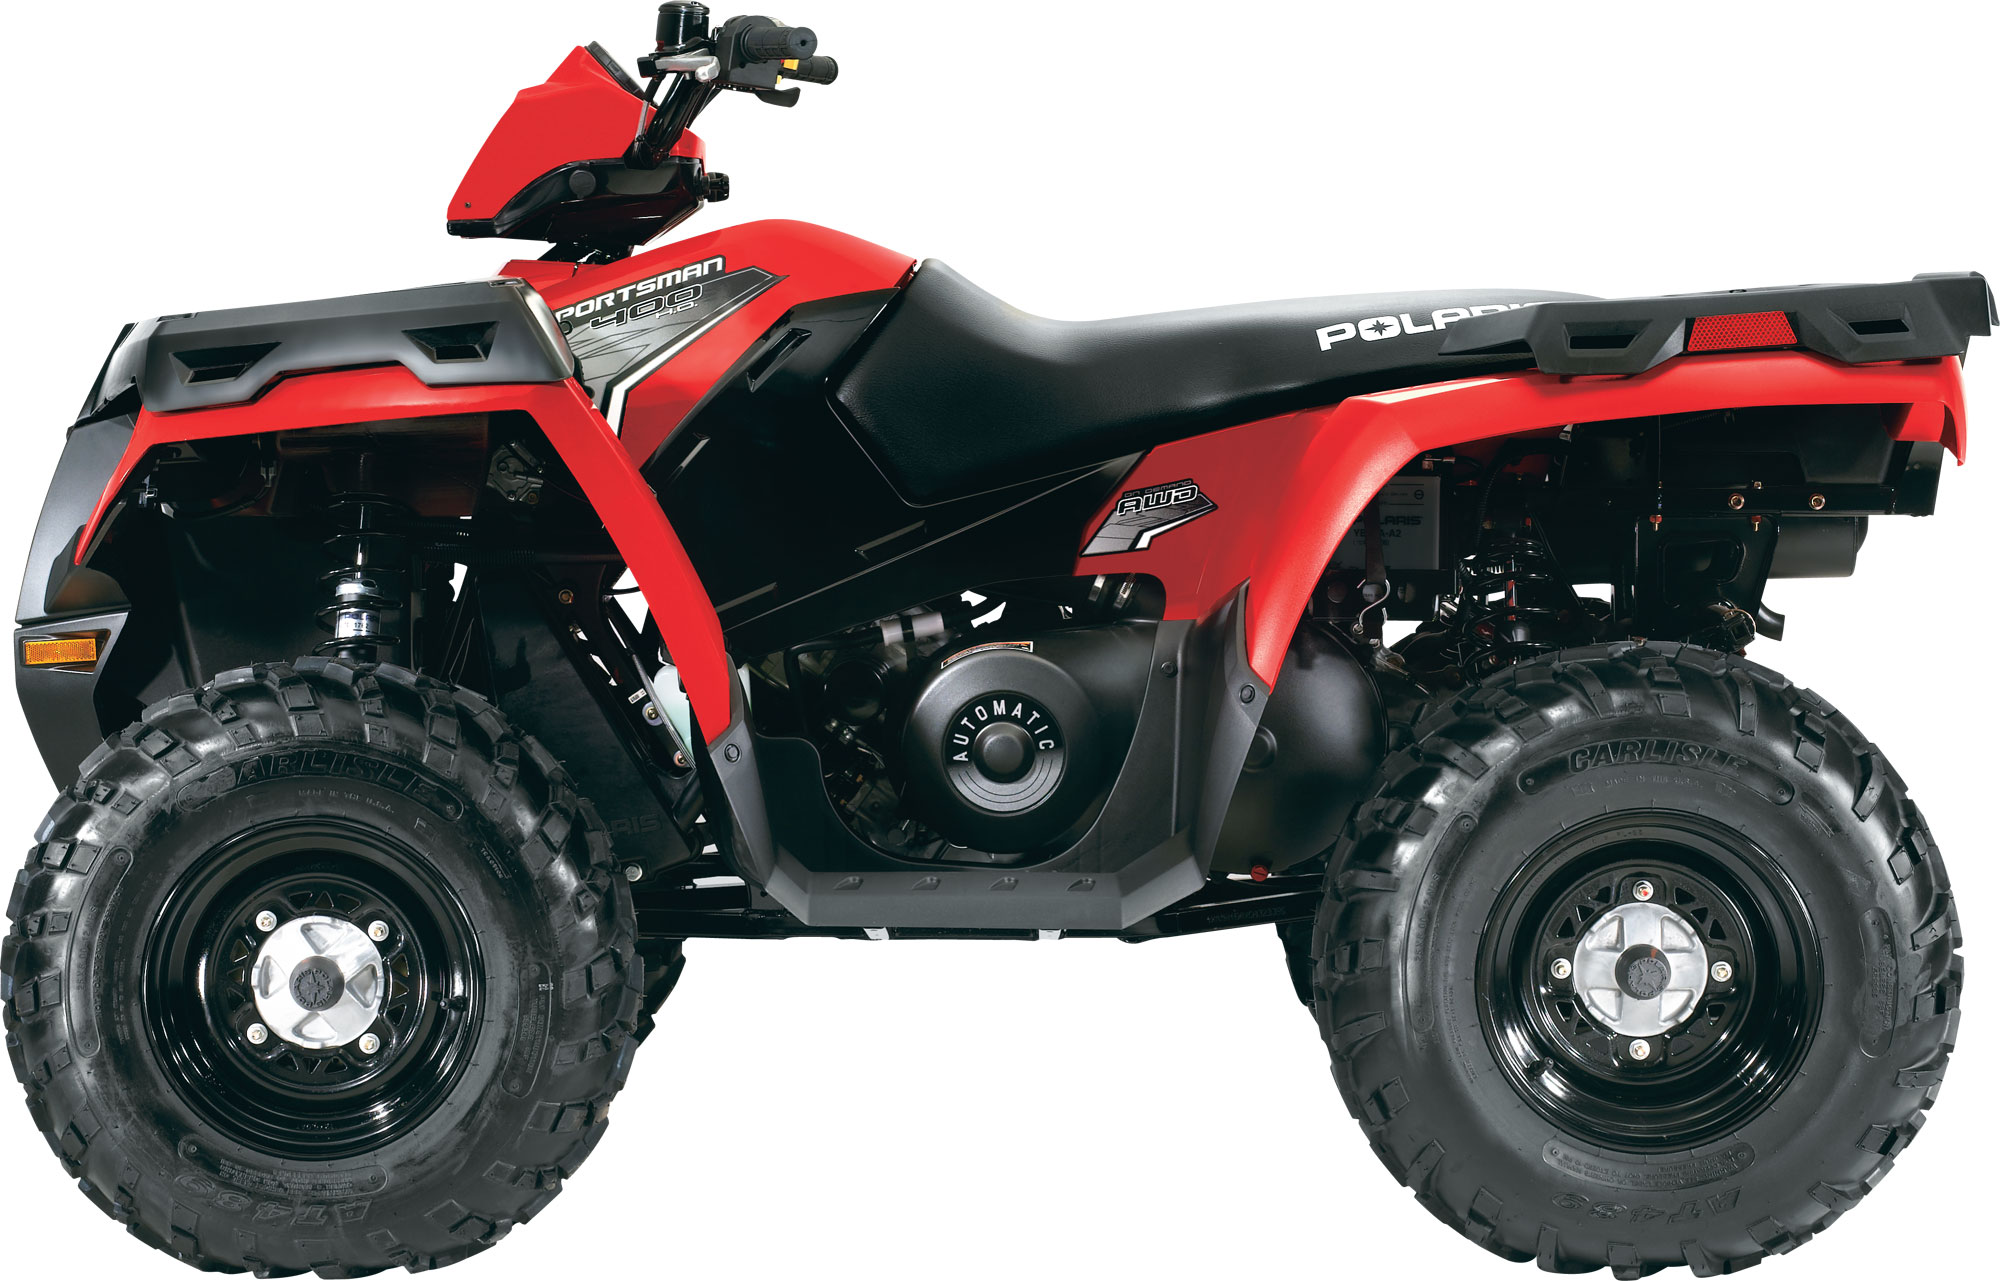 POLARIS Sportsman 400 H O  specs - 2011, 2012 - autoevolution